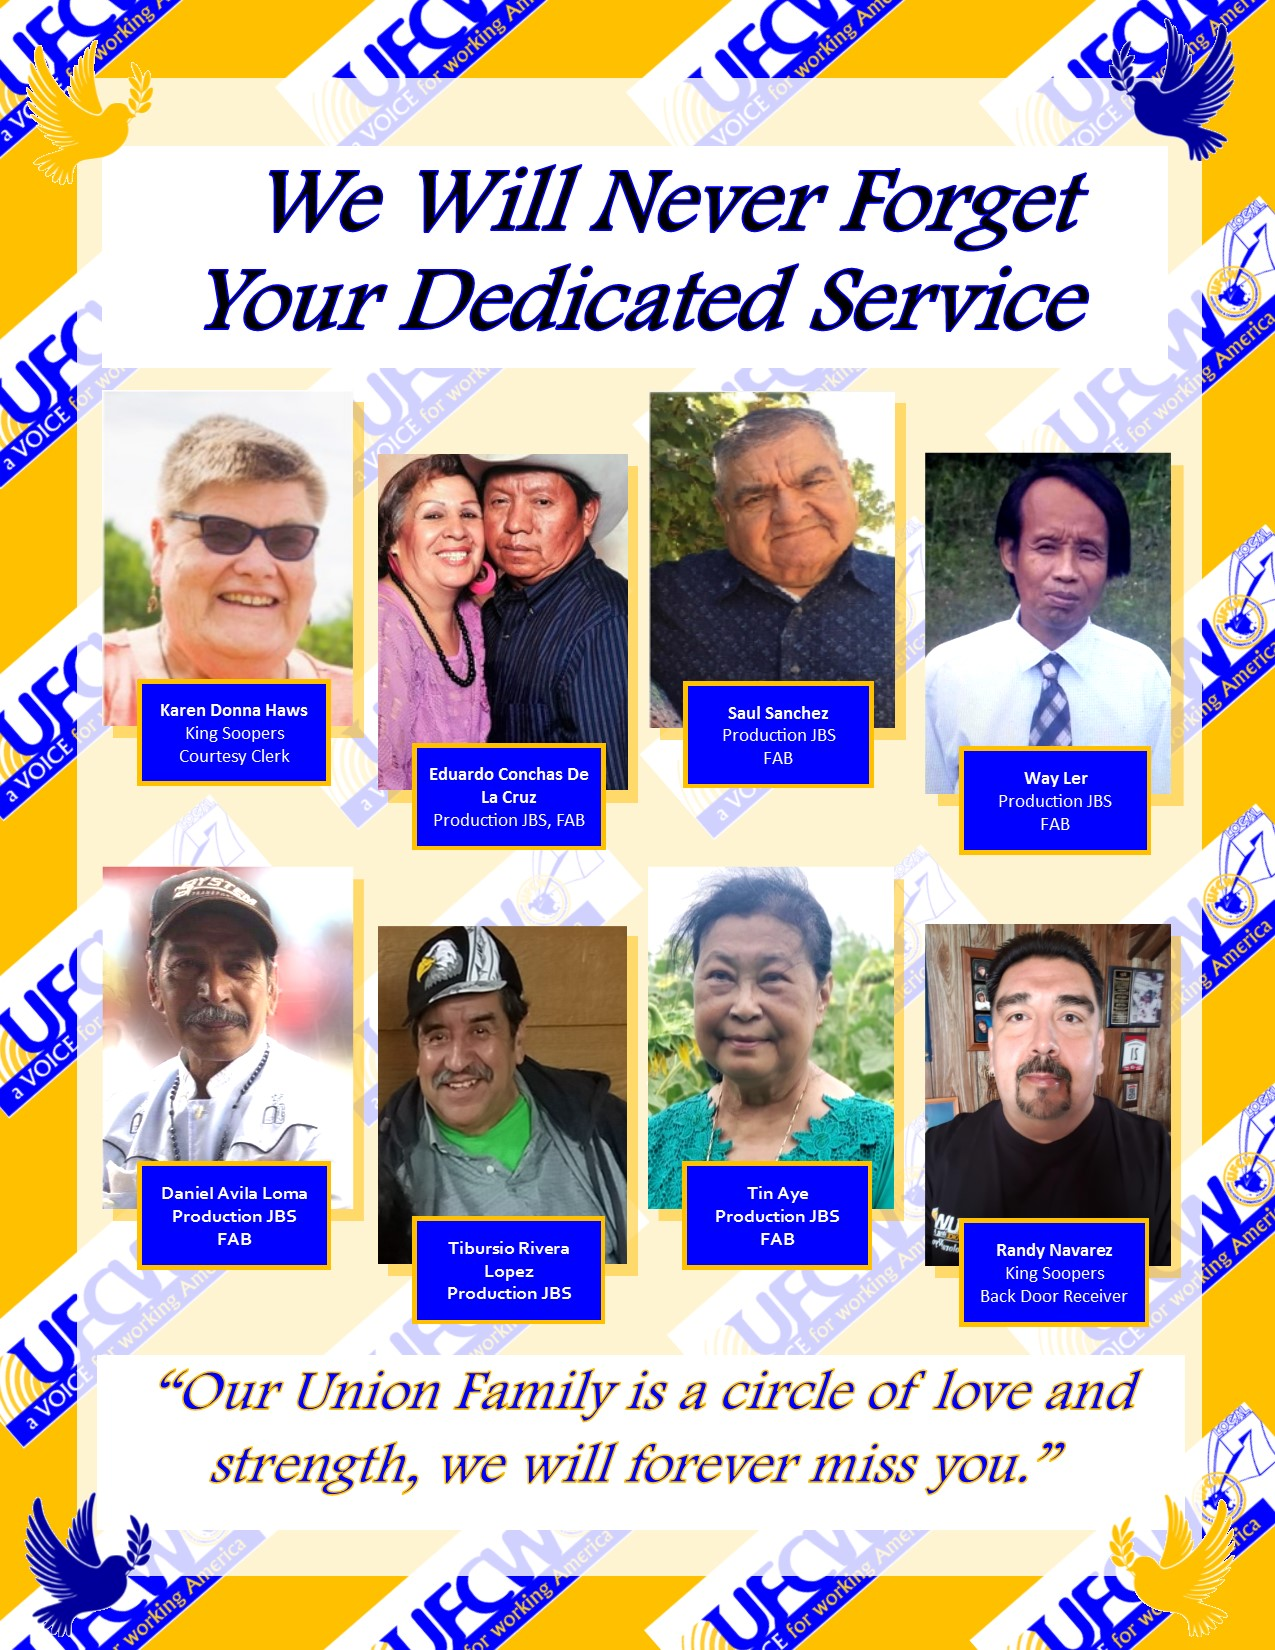 Tribute to UFCW Local 7 Heroes